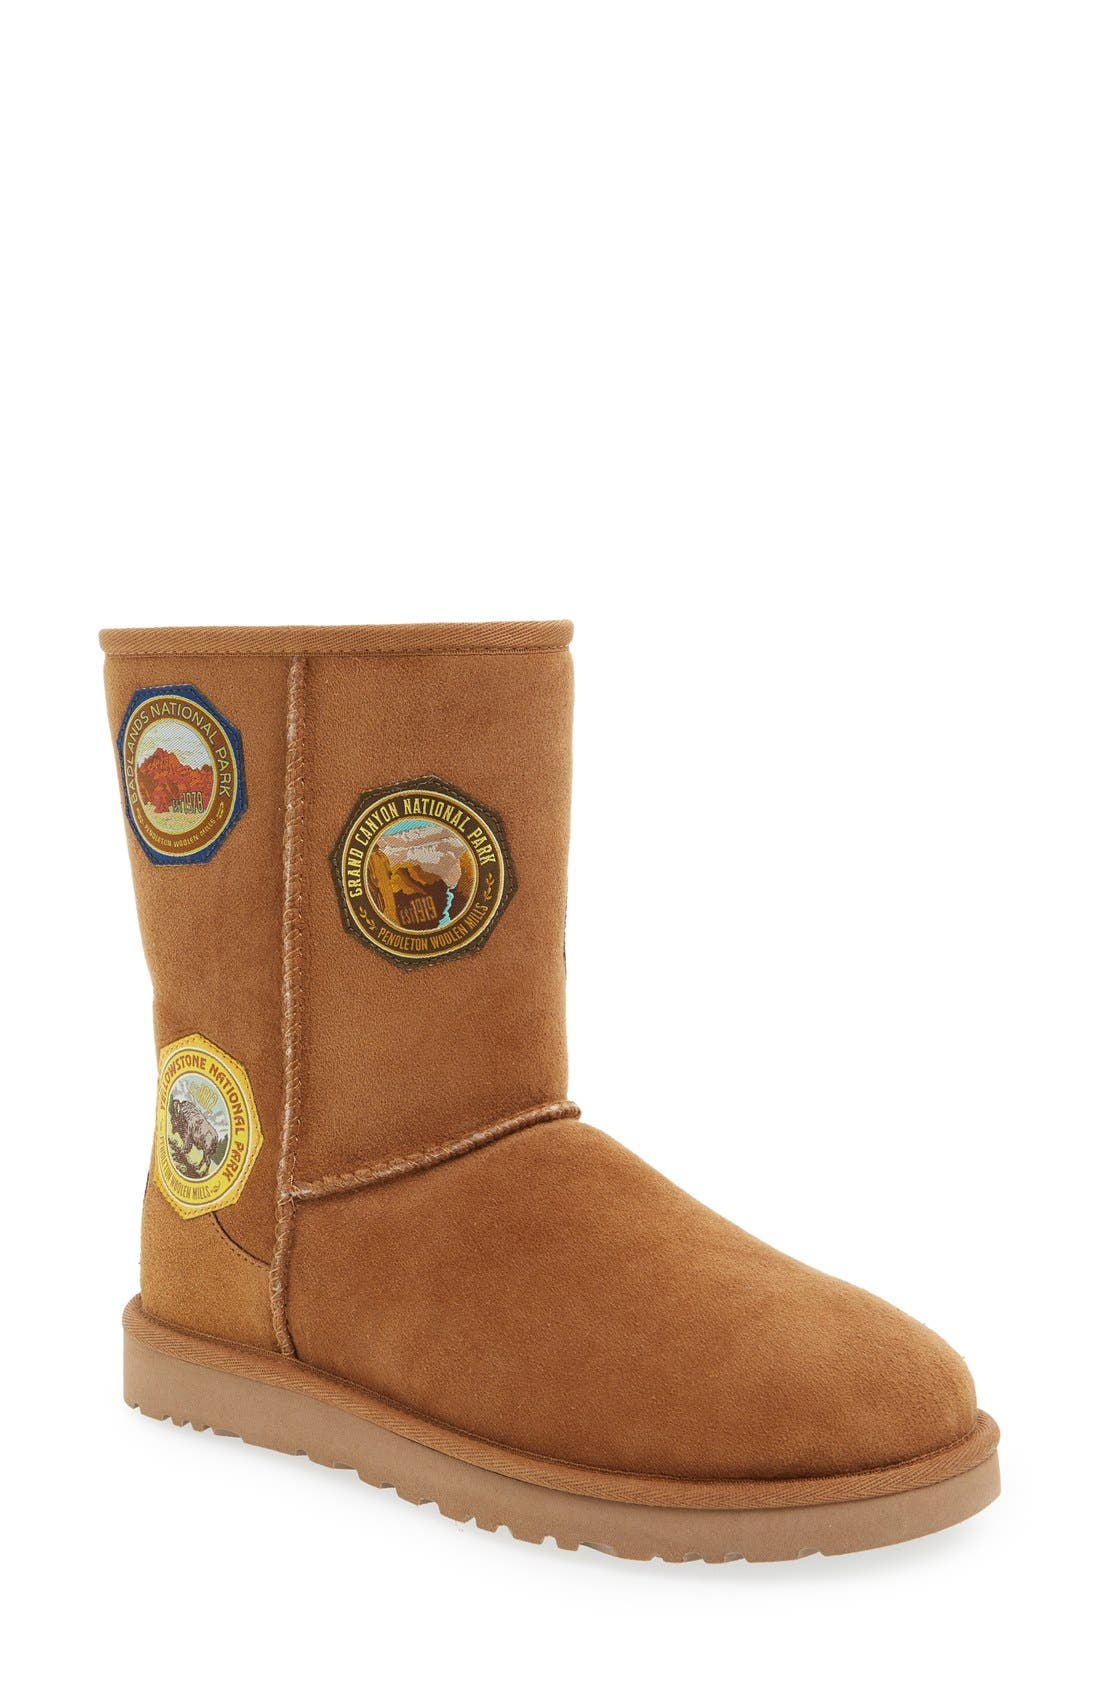 Alternate Image 1 Selected - UGG® x Pendleton 'Classic Short - Patch' Boot (Women)